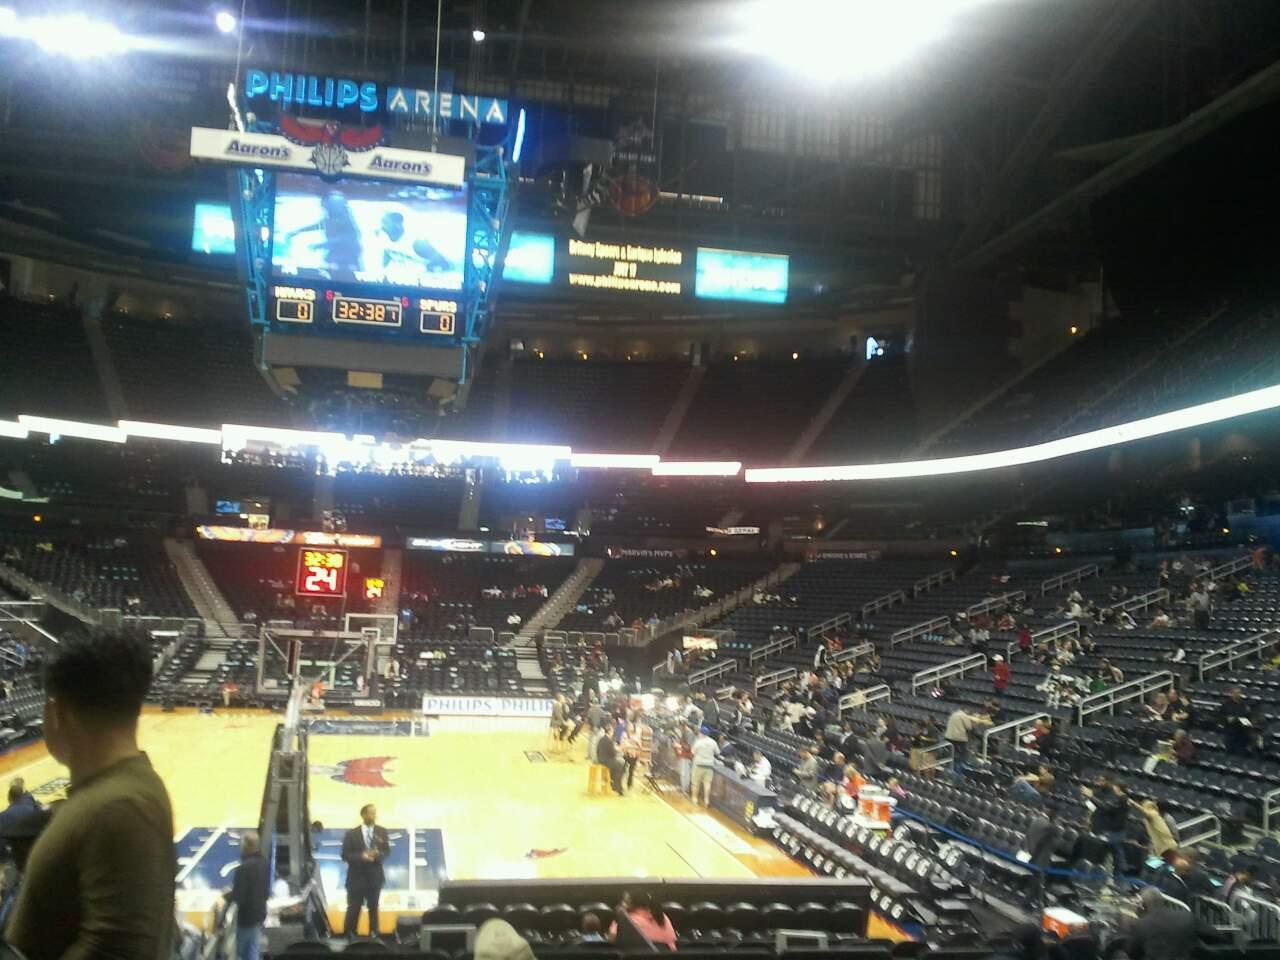 State Farm Arena Section 120 Row d Seat 12